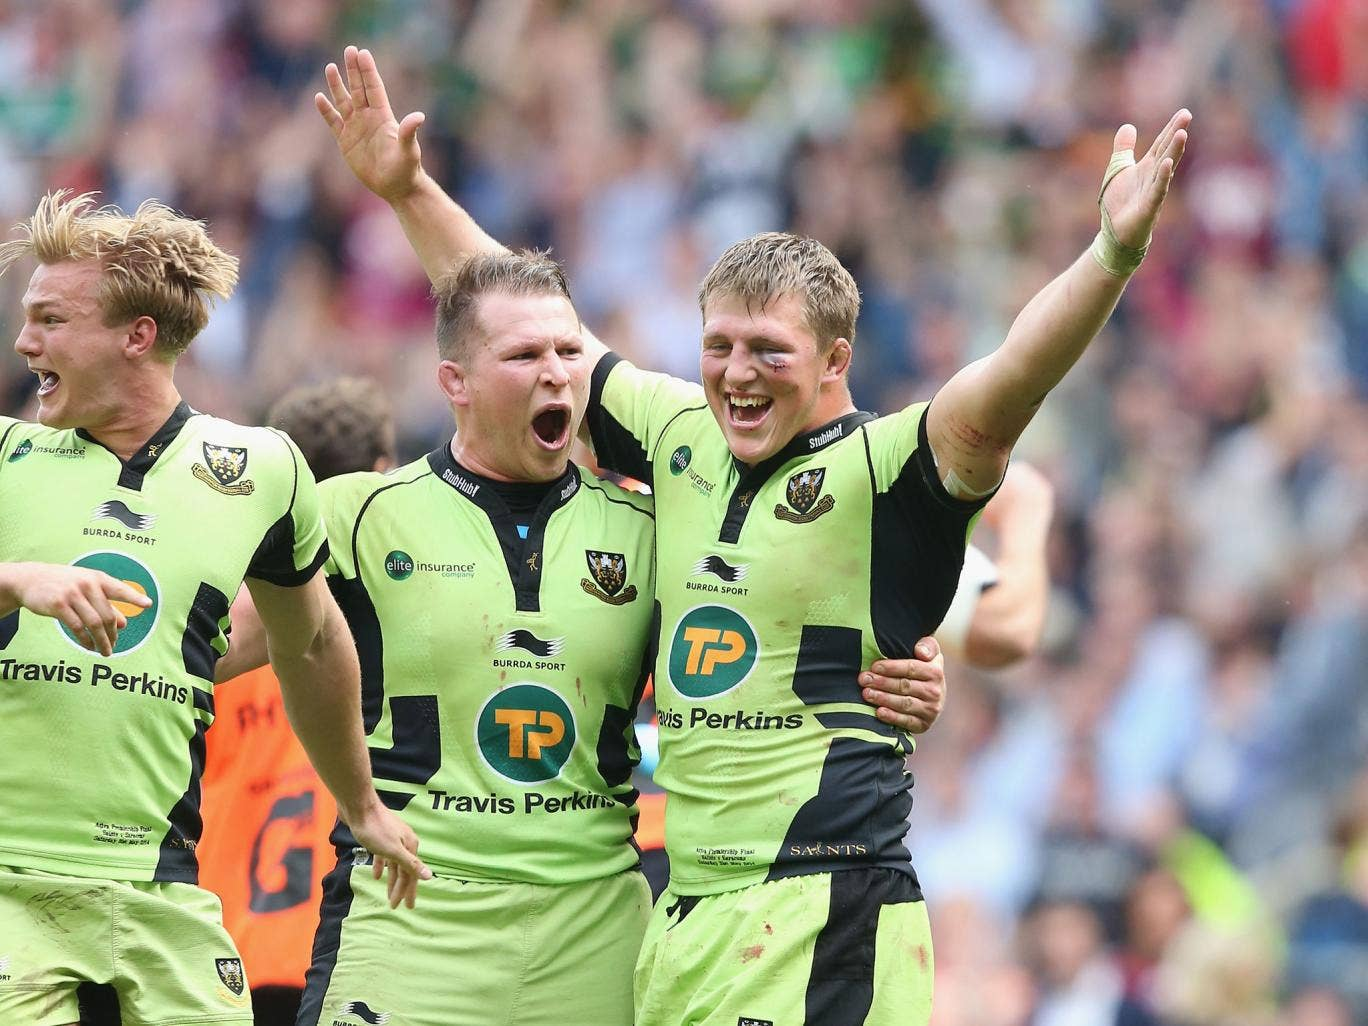 Dylan Hartley embraces Alex Waller after the latter scored the match winning try in the Premiership final